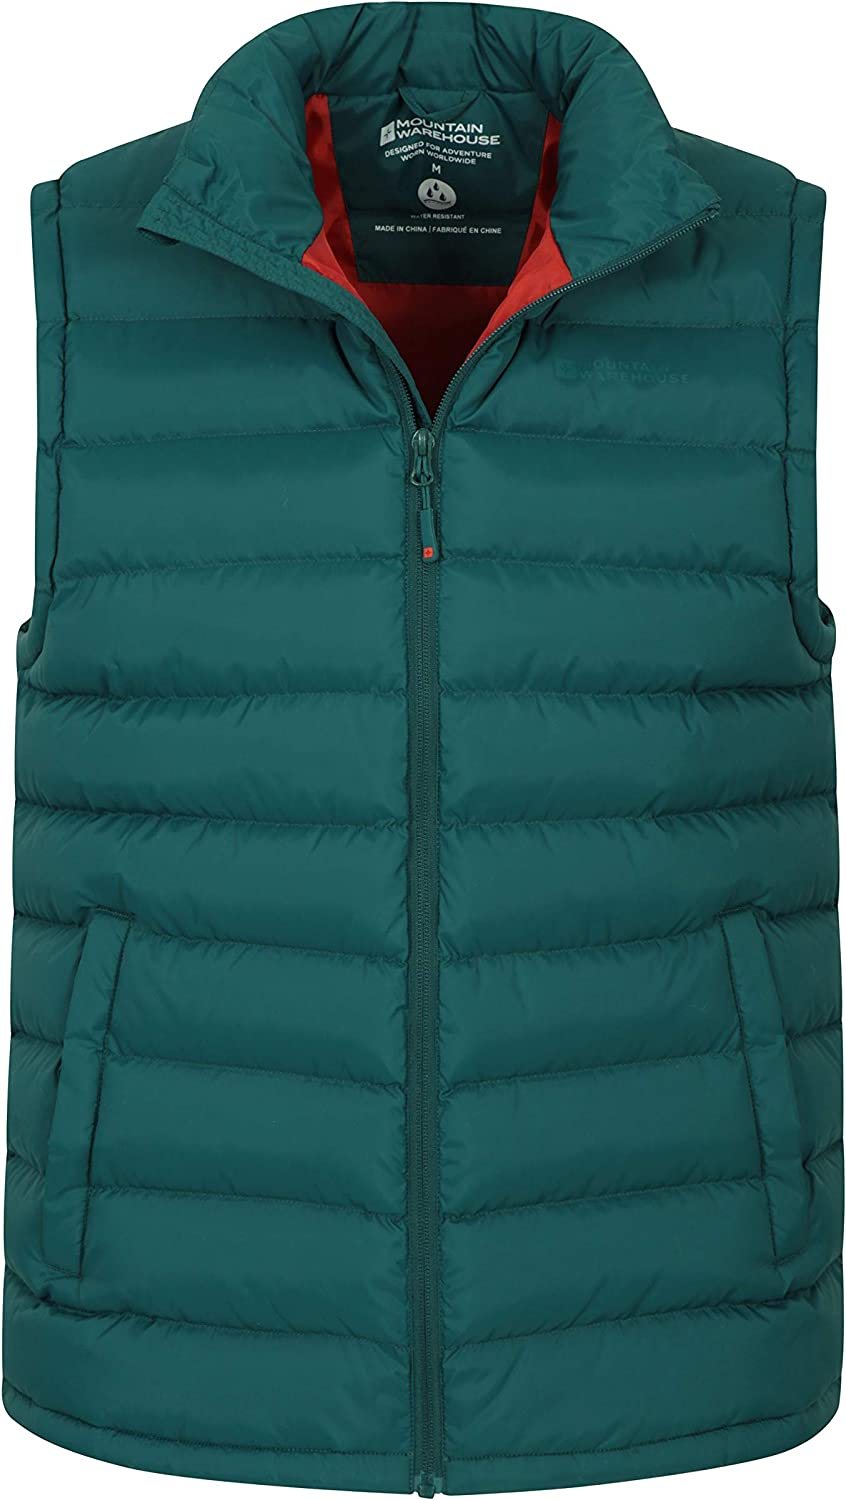 Body Warmer Easy to Store Coat Mountain Warehouse Seasons Mens Padded Gilet Lightweight Jacket for Winter Travelling Water Resistant Gilet Walking